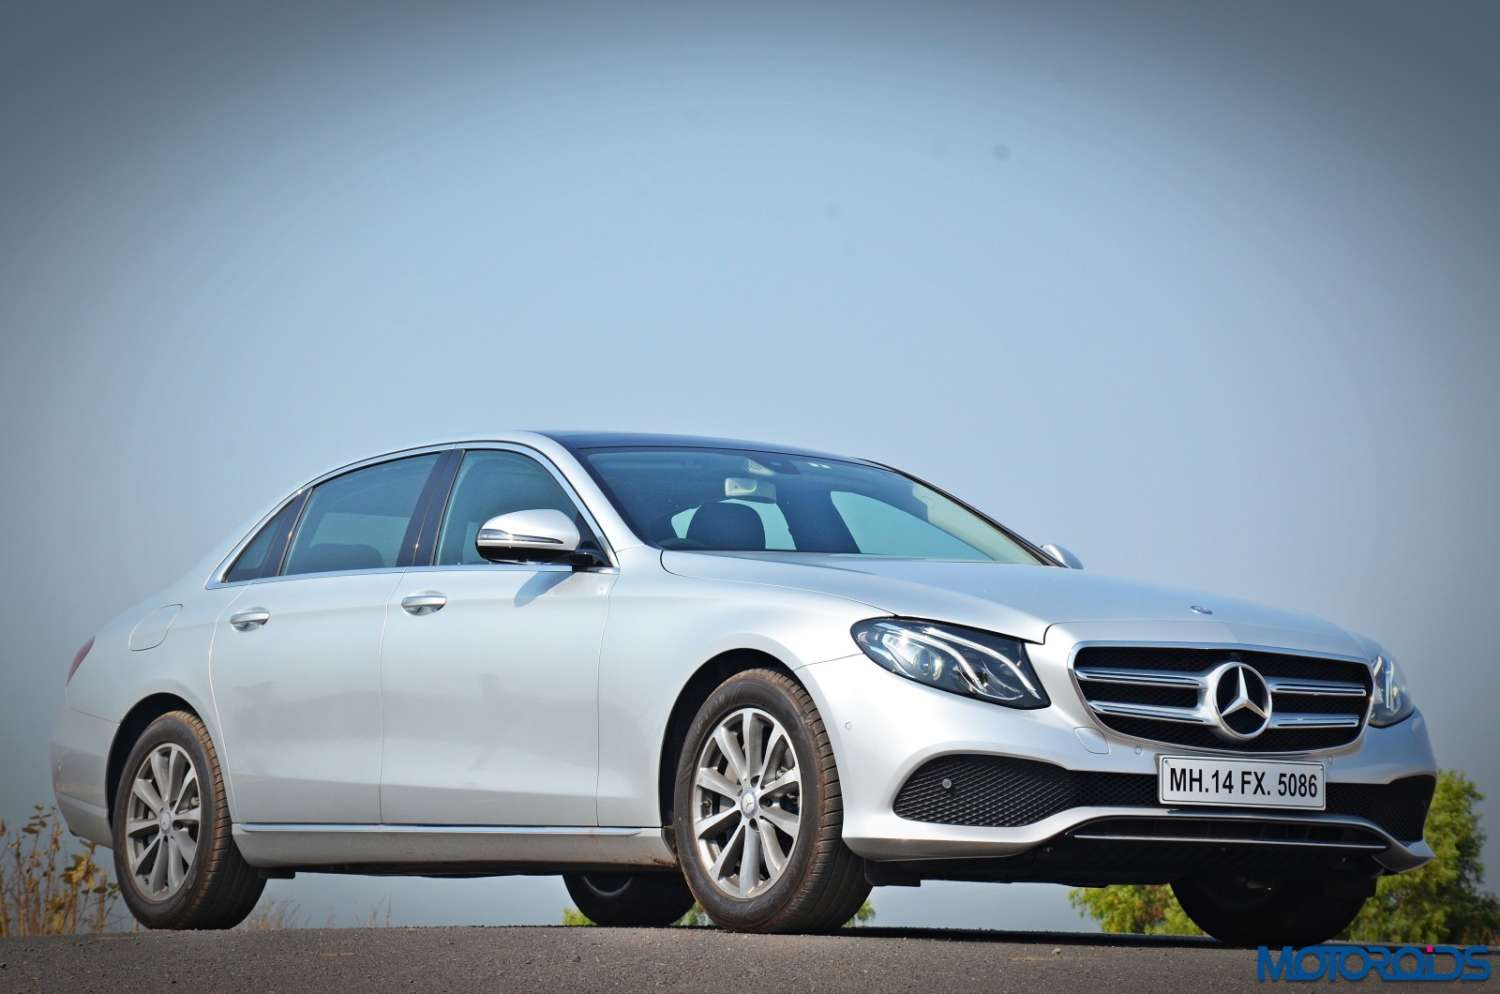 New-Mercedes-Benz-E-350-CDI-LWB-Review-10